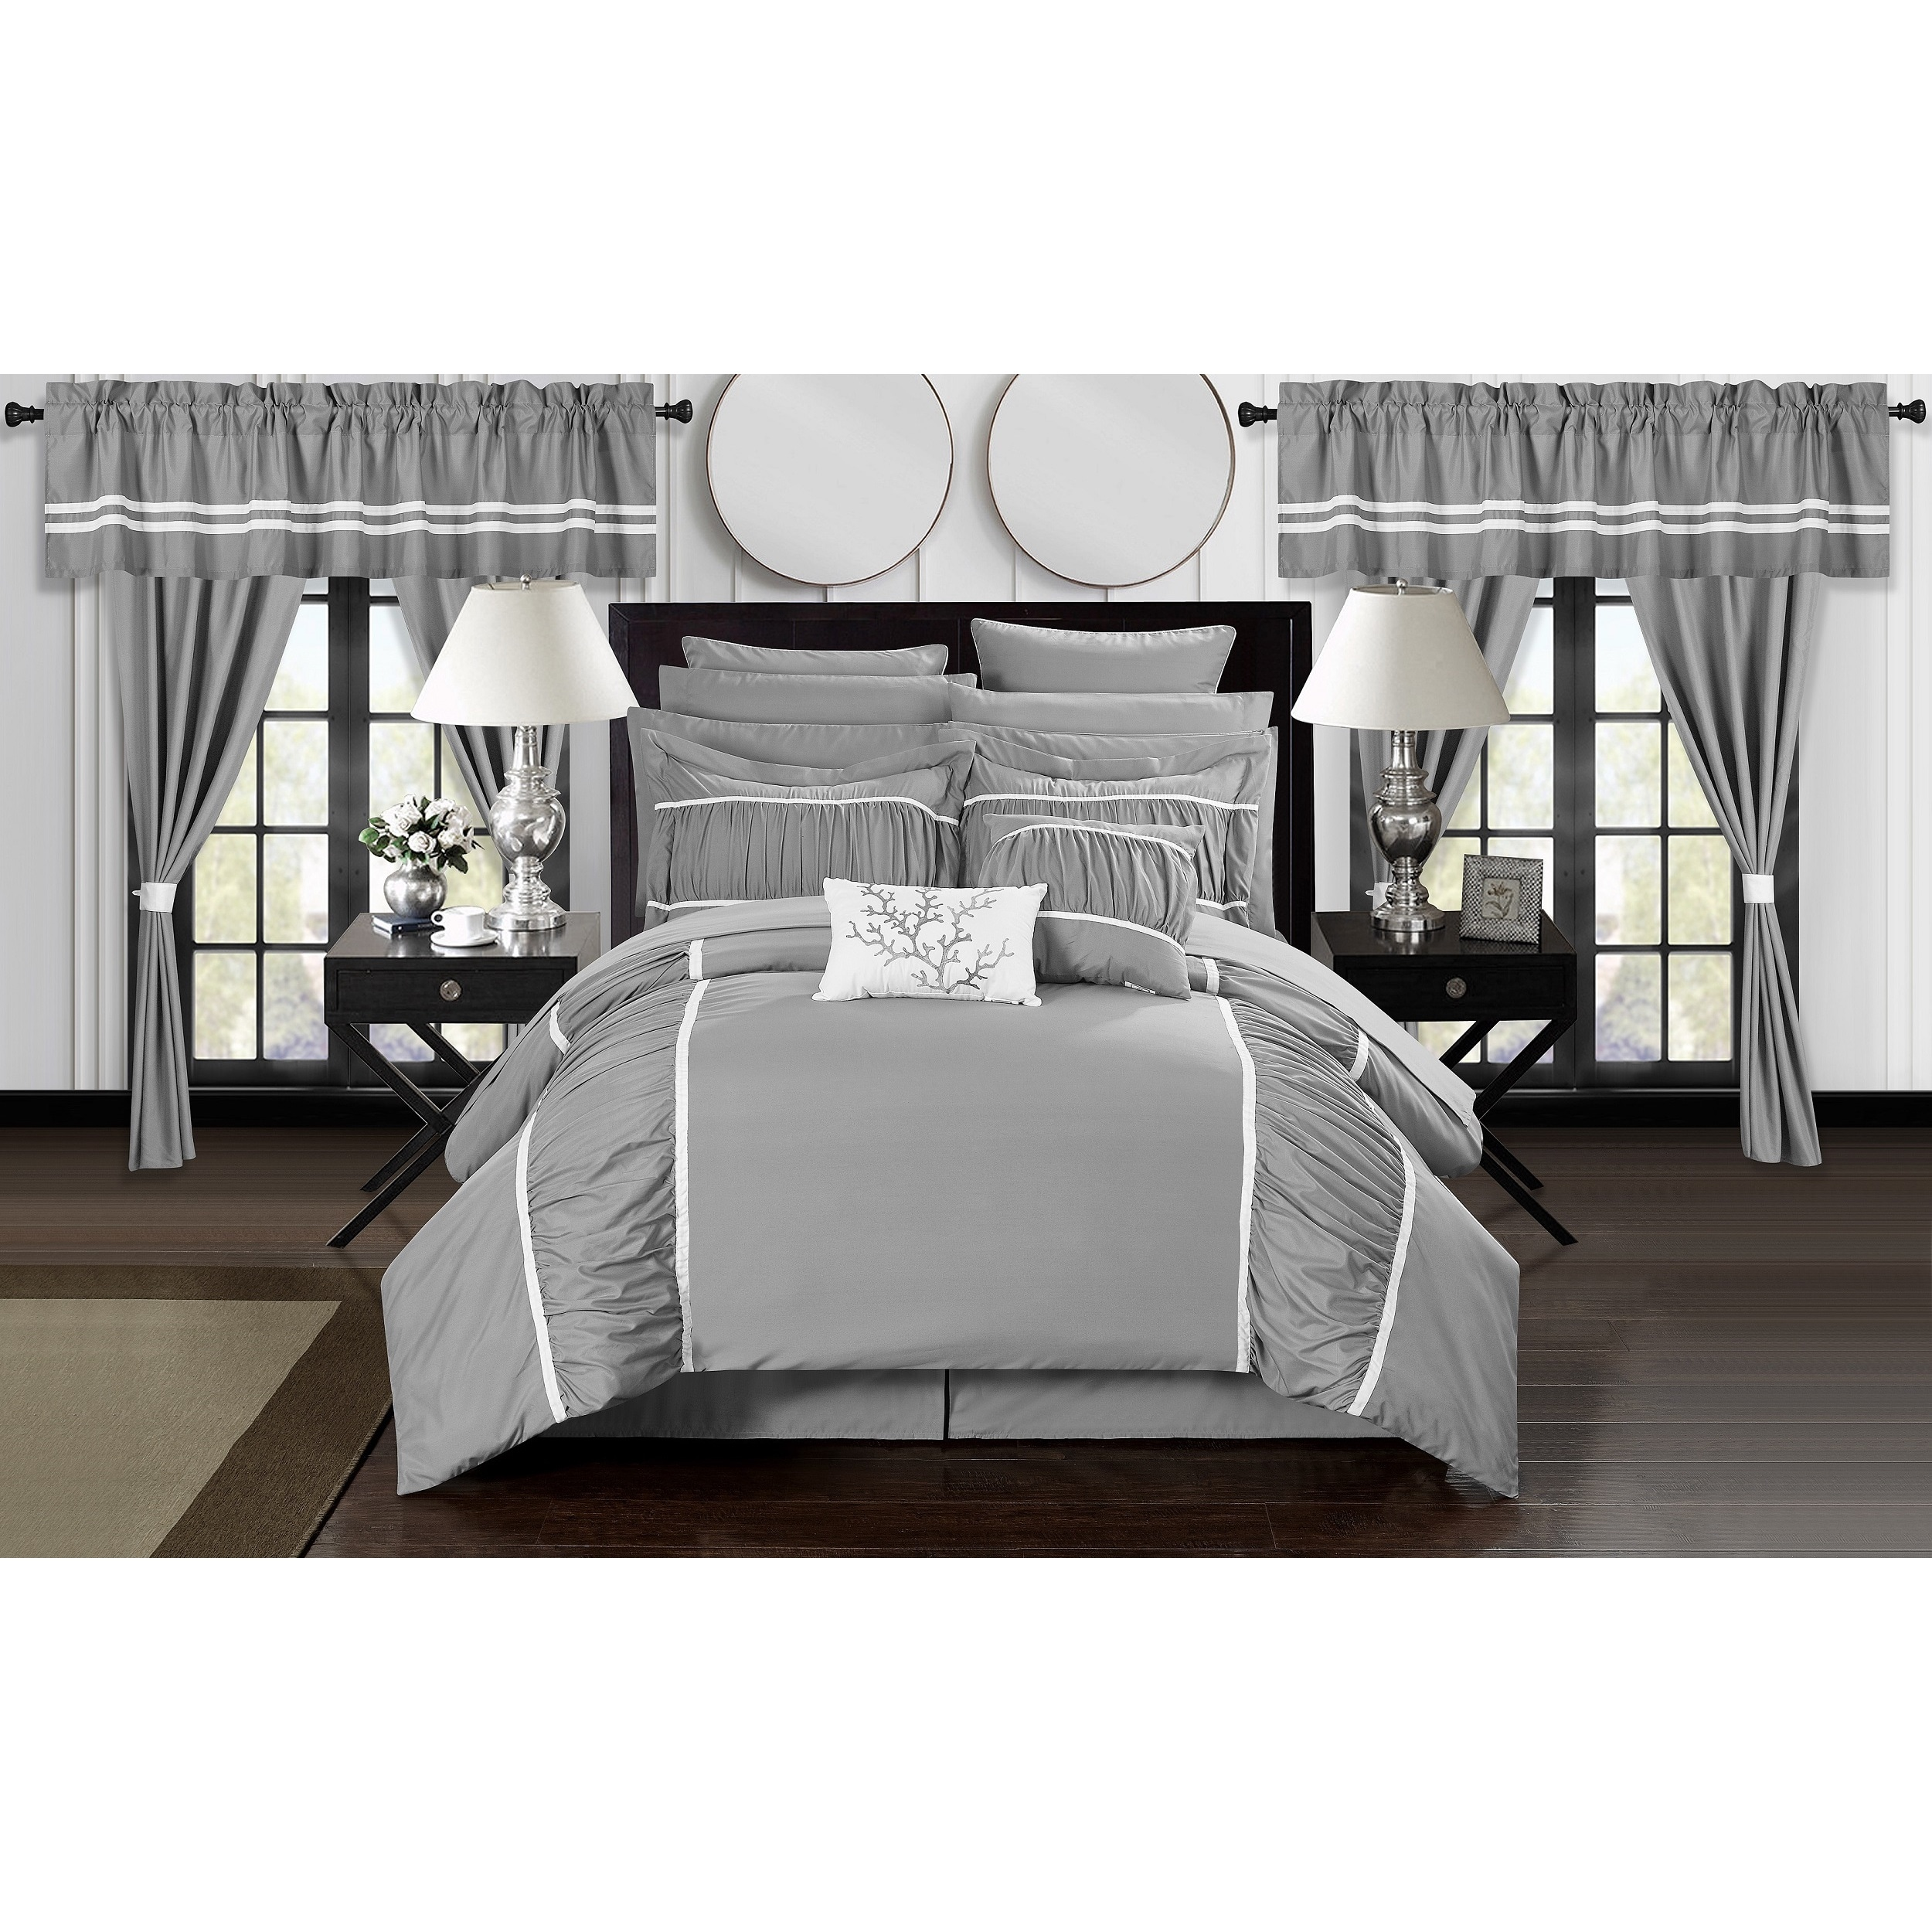 Details about Chic Home 24-Piece Auburn King Bed In a Bag Comforter Set